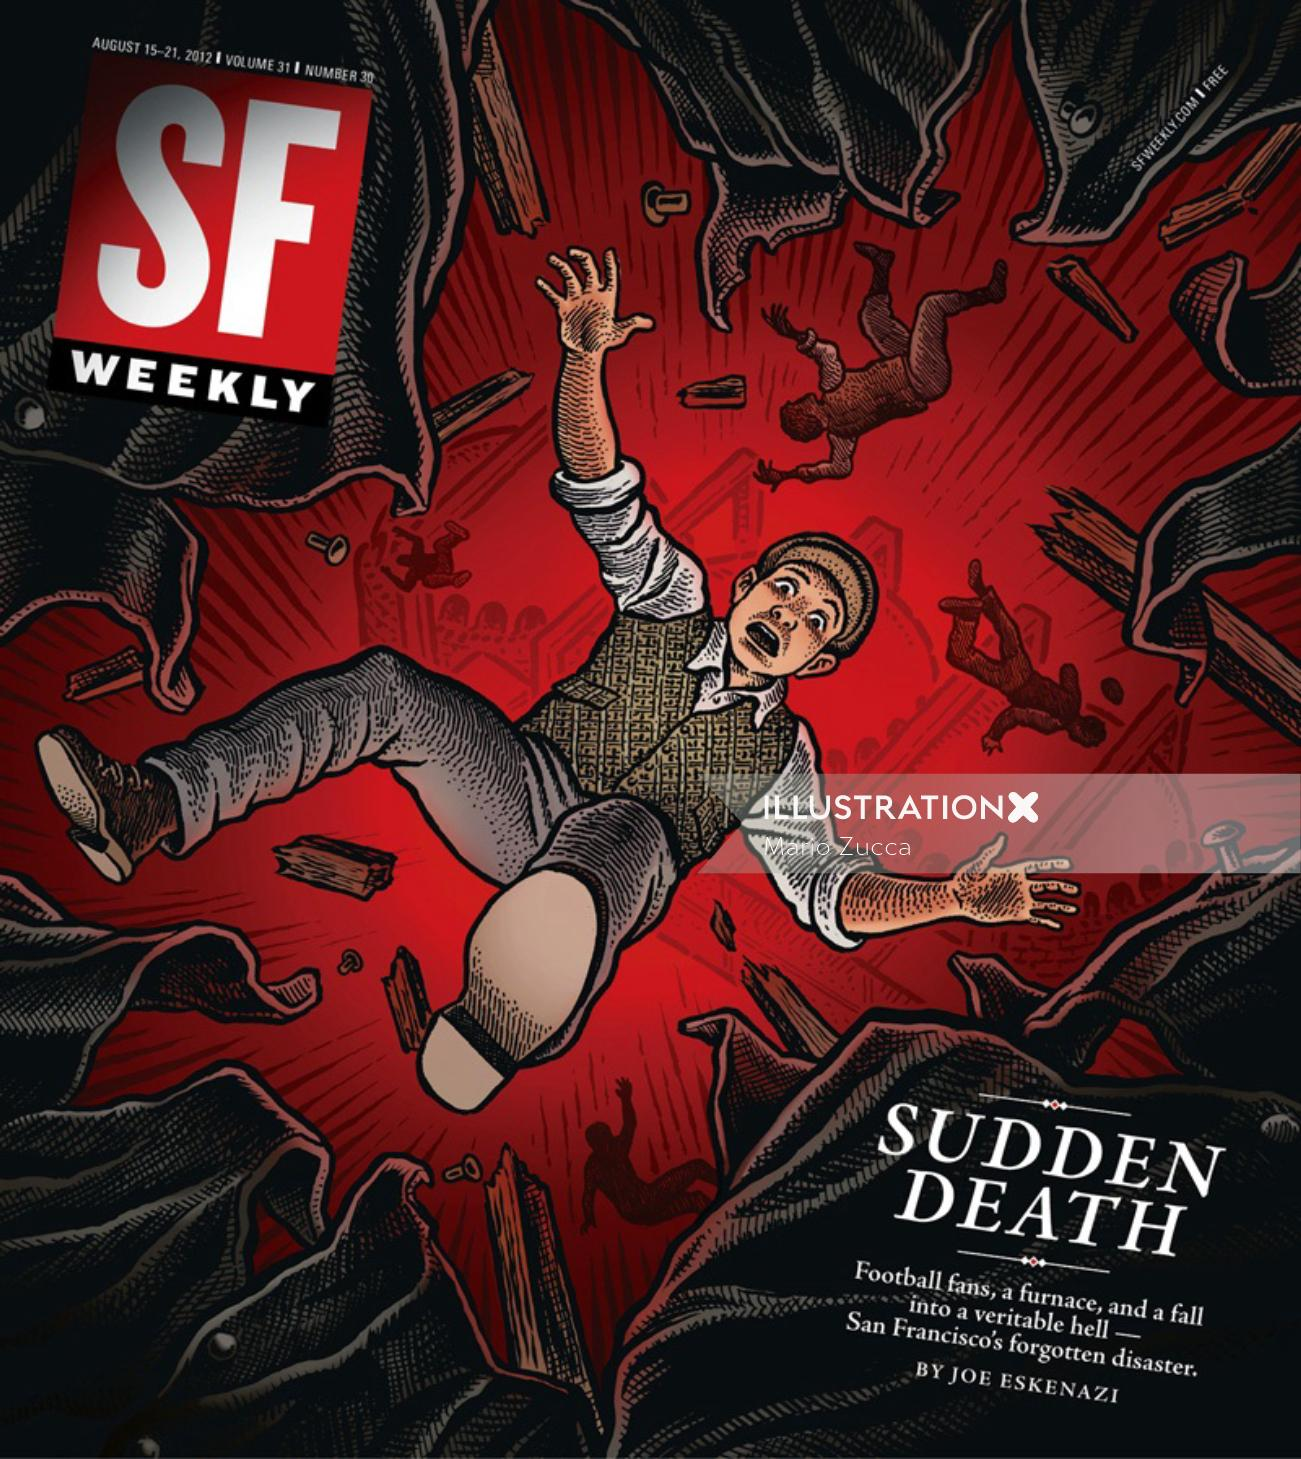 SF Weekly magazine's cover art of Sudden Death